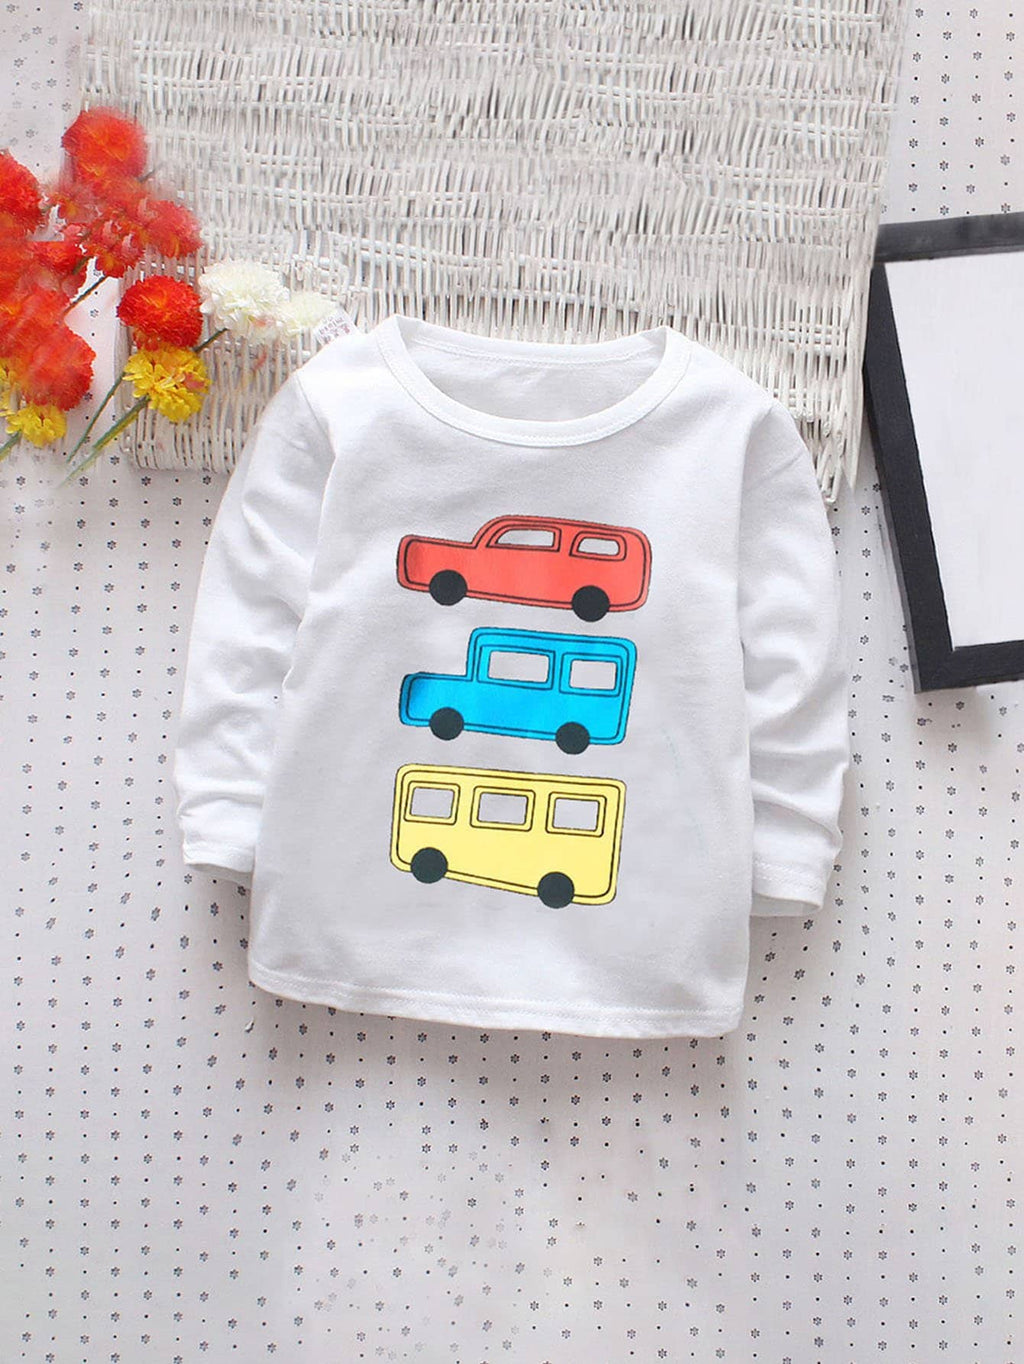 Toddler Boy T-Shirts - Car Pattern Tee